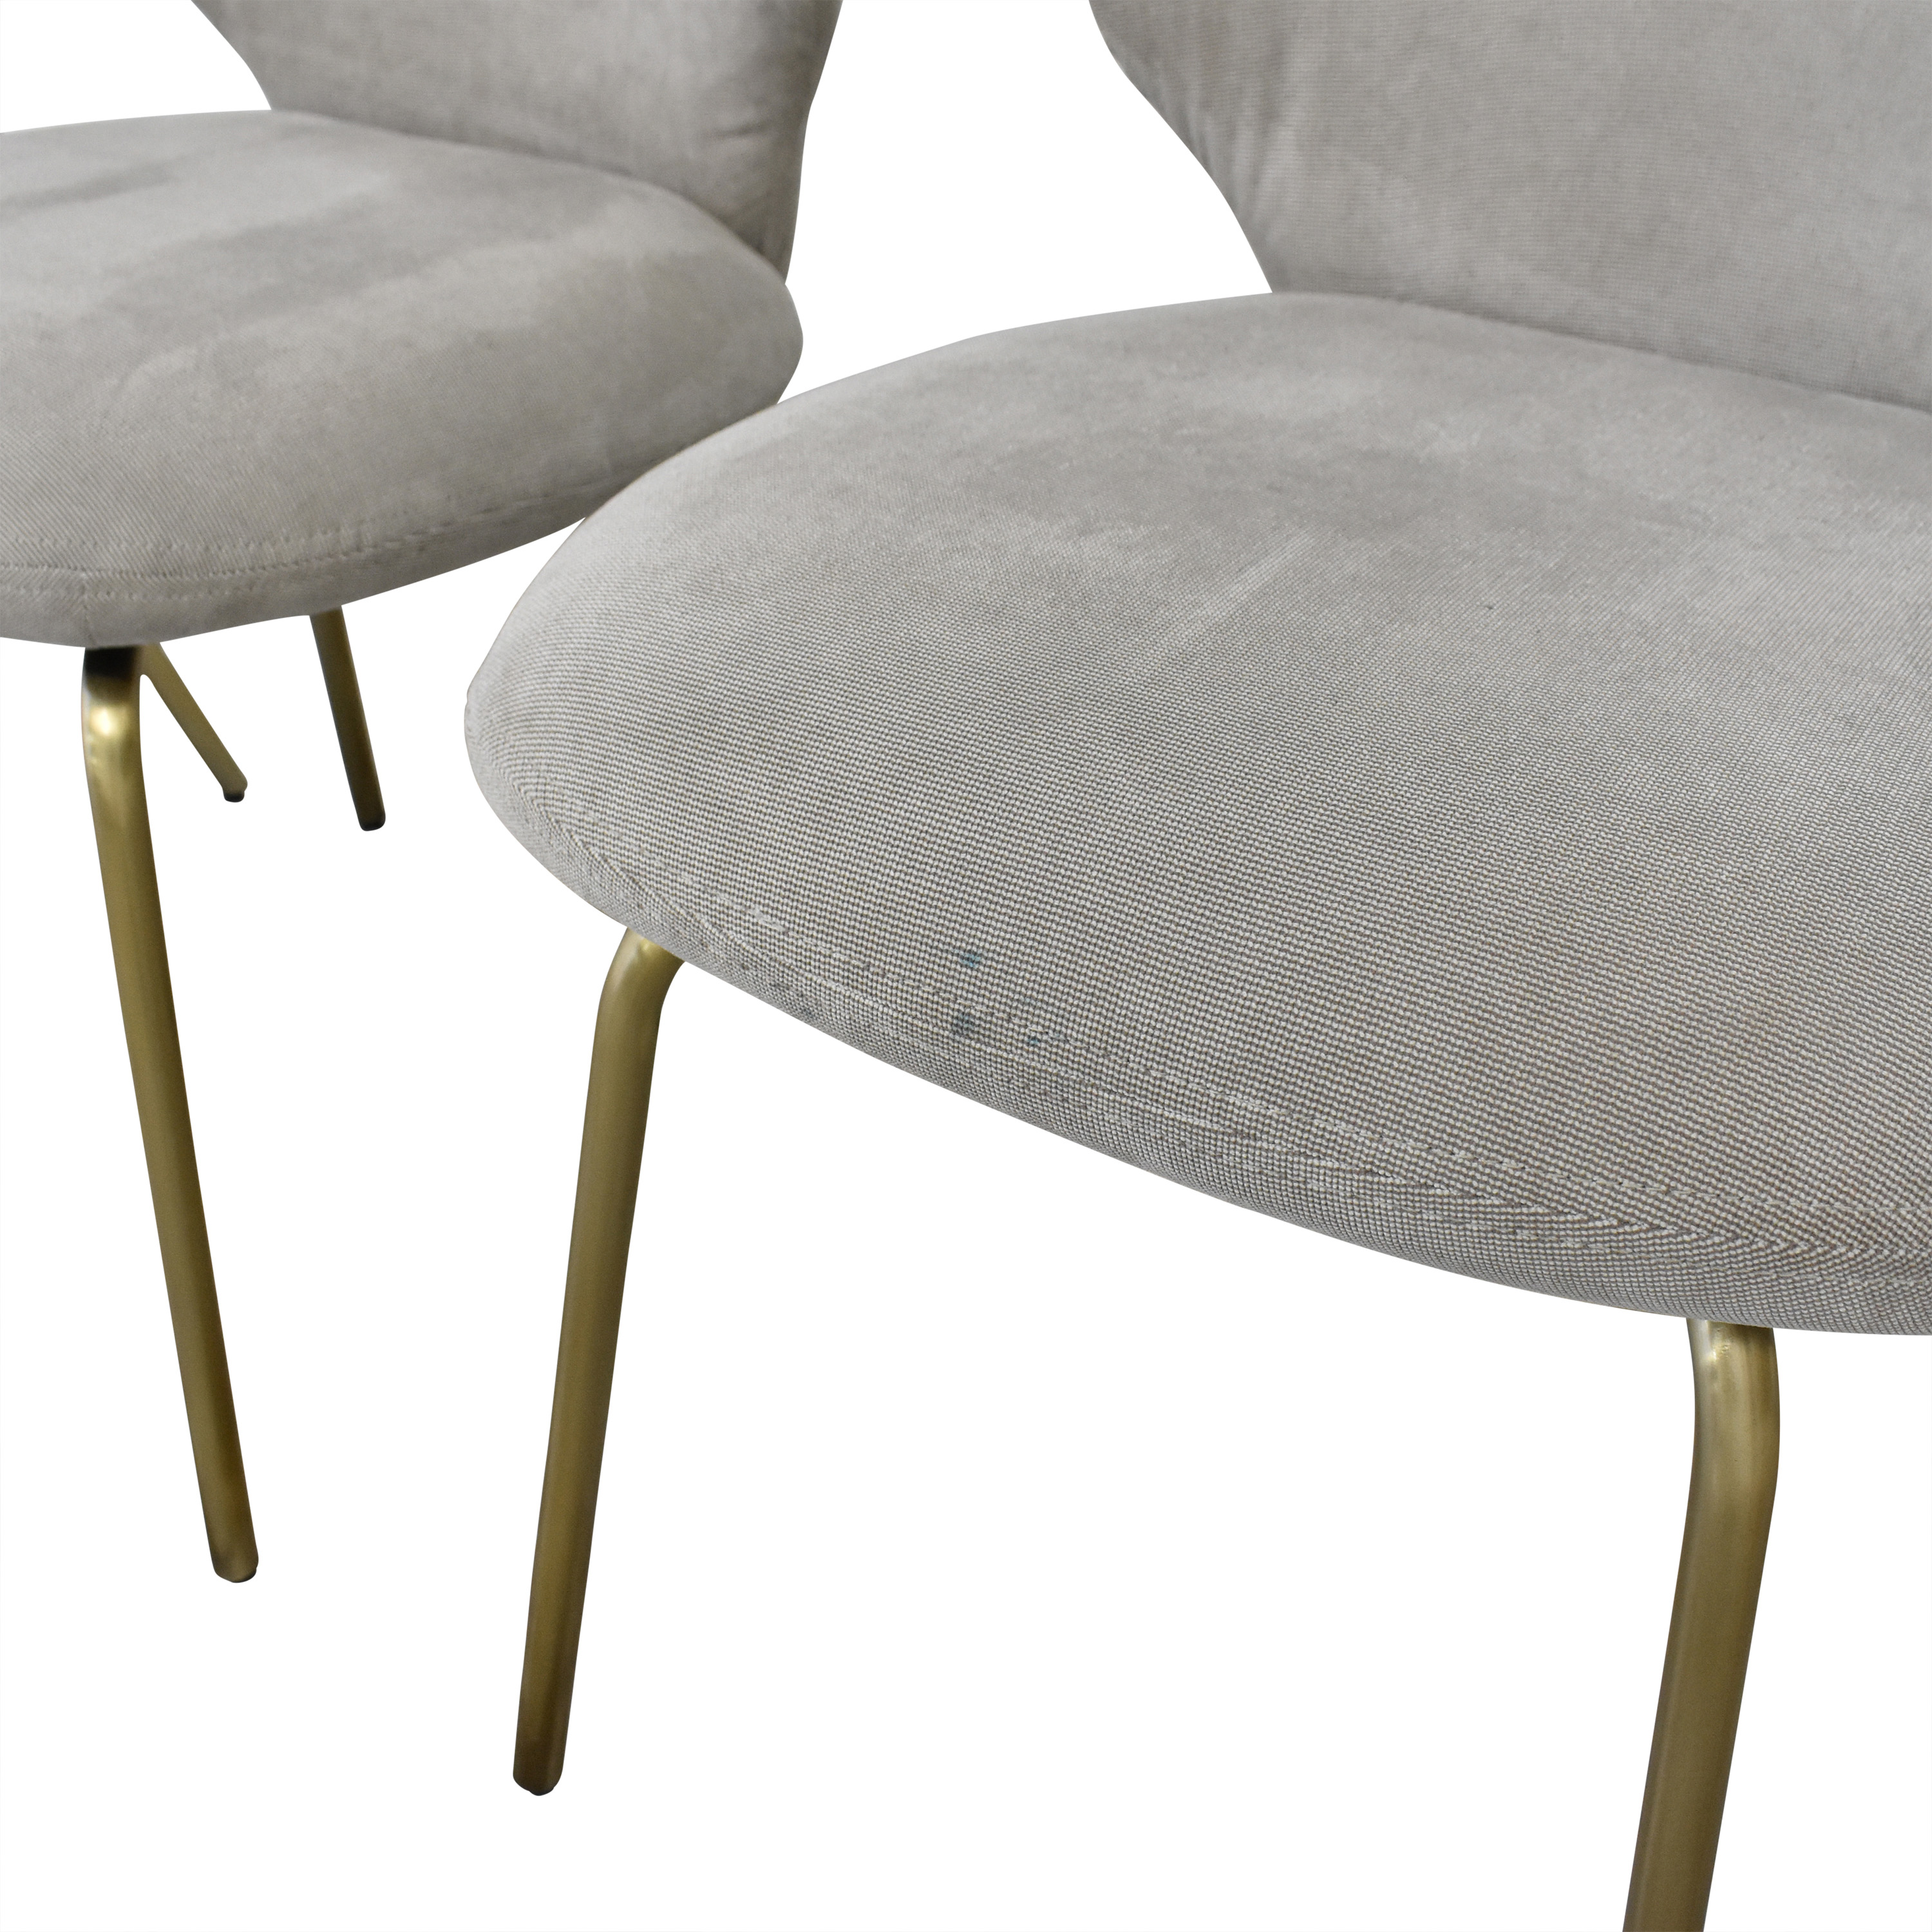 Interior Define Interior Define Upholstered Dining Chairs on sale